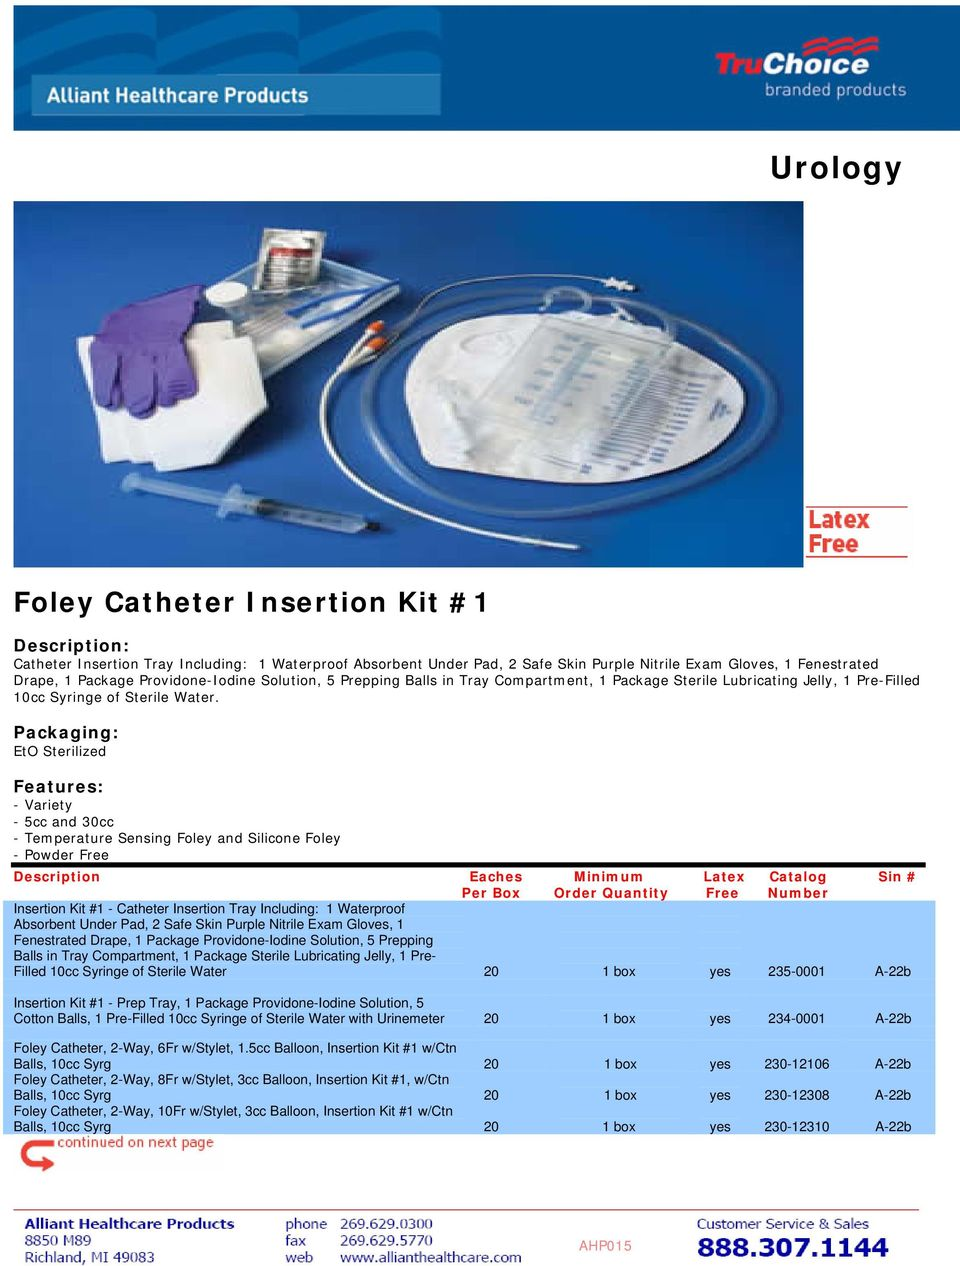 - Variety - 5cc and 30cc - Temperature Sensing Foley and Silicone Foley - Powder Free Insertion Kit #1 - Catheter Insertion Tray Including: 1 Waterproof Absorbent Under Pad, 2 Safe Skin Purple